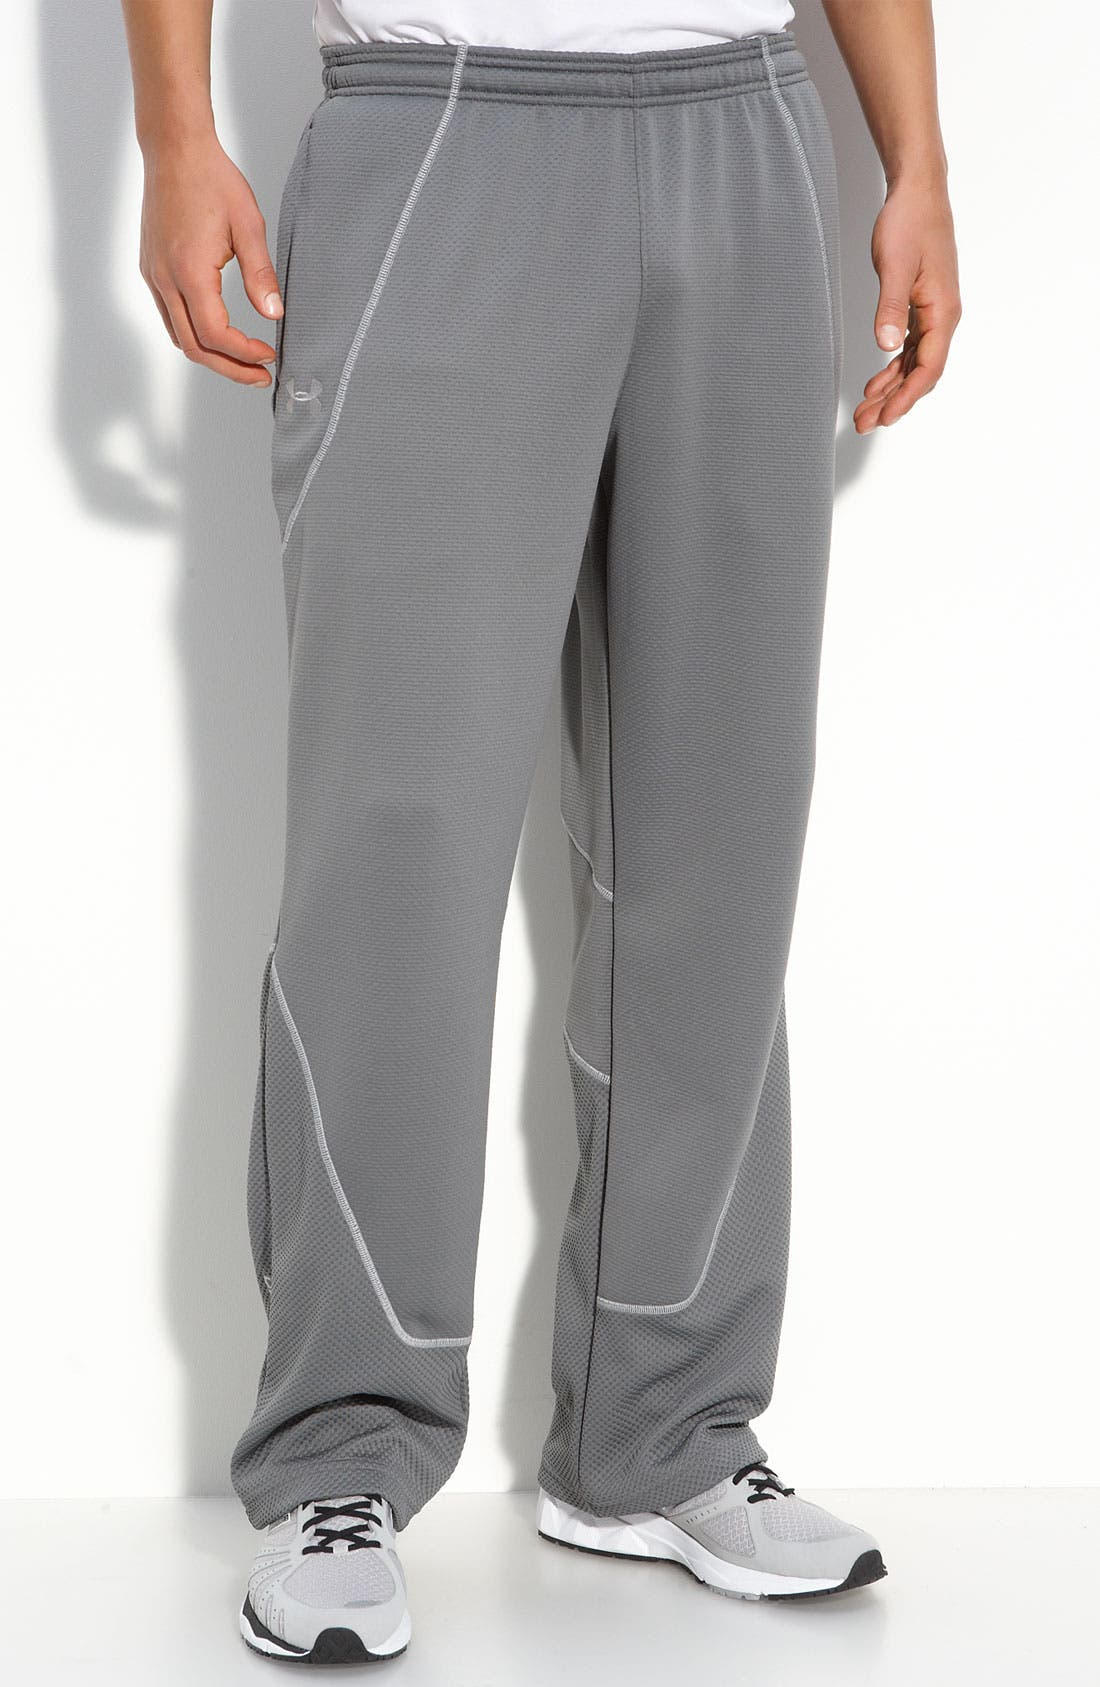 Alternate Image 1 Selected - Under Armour 'Fuego III' AllSeasonGear® Pants